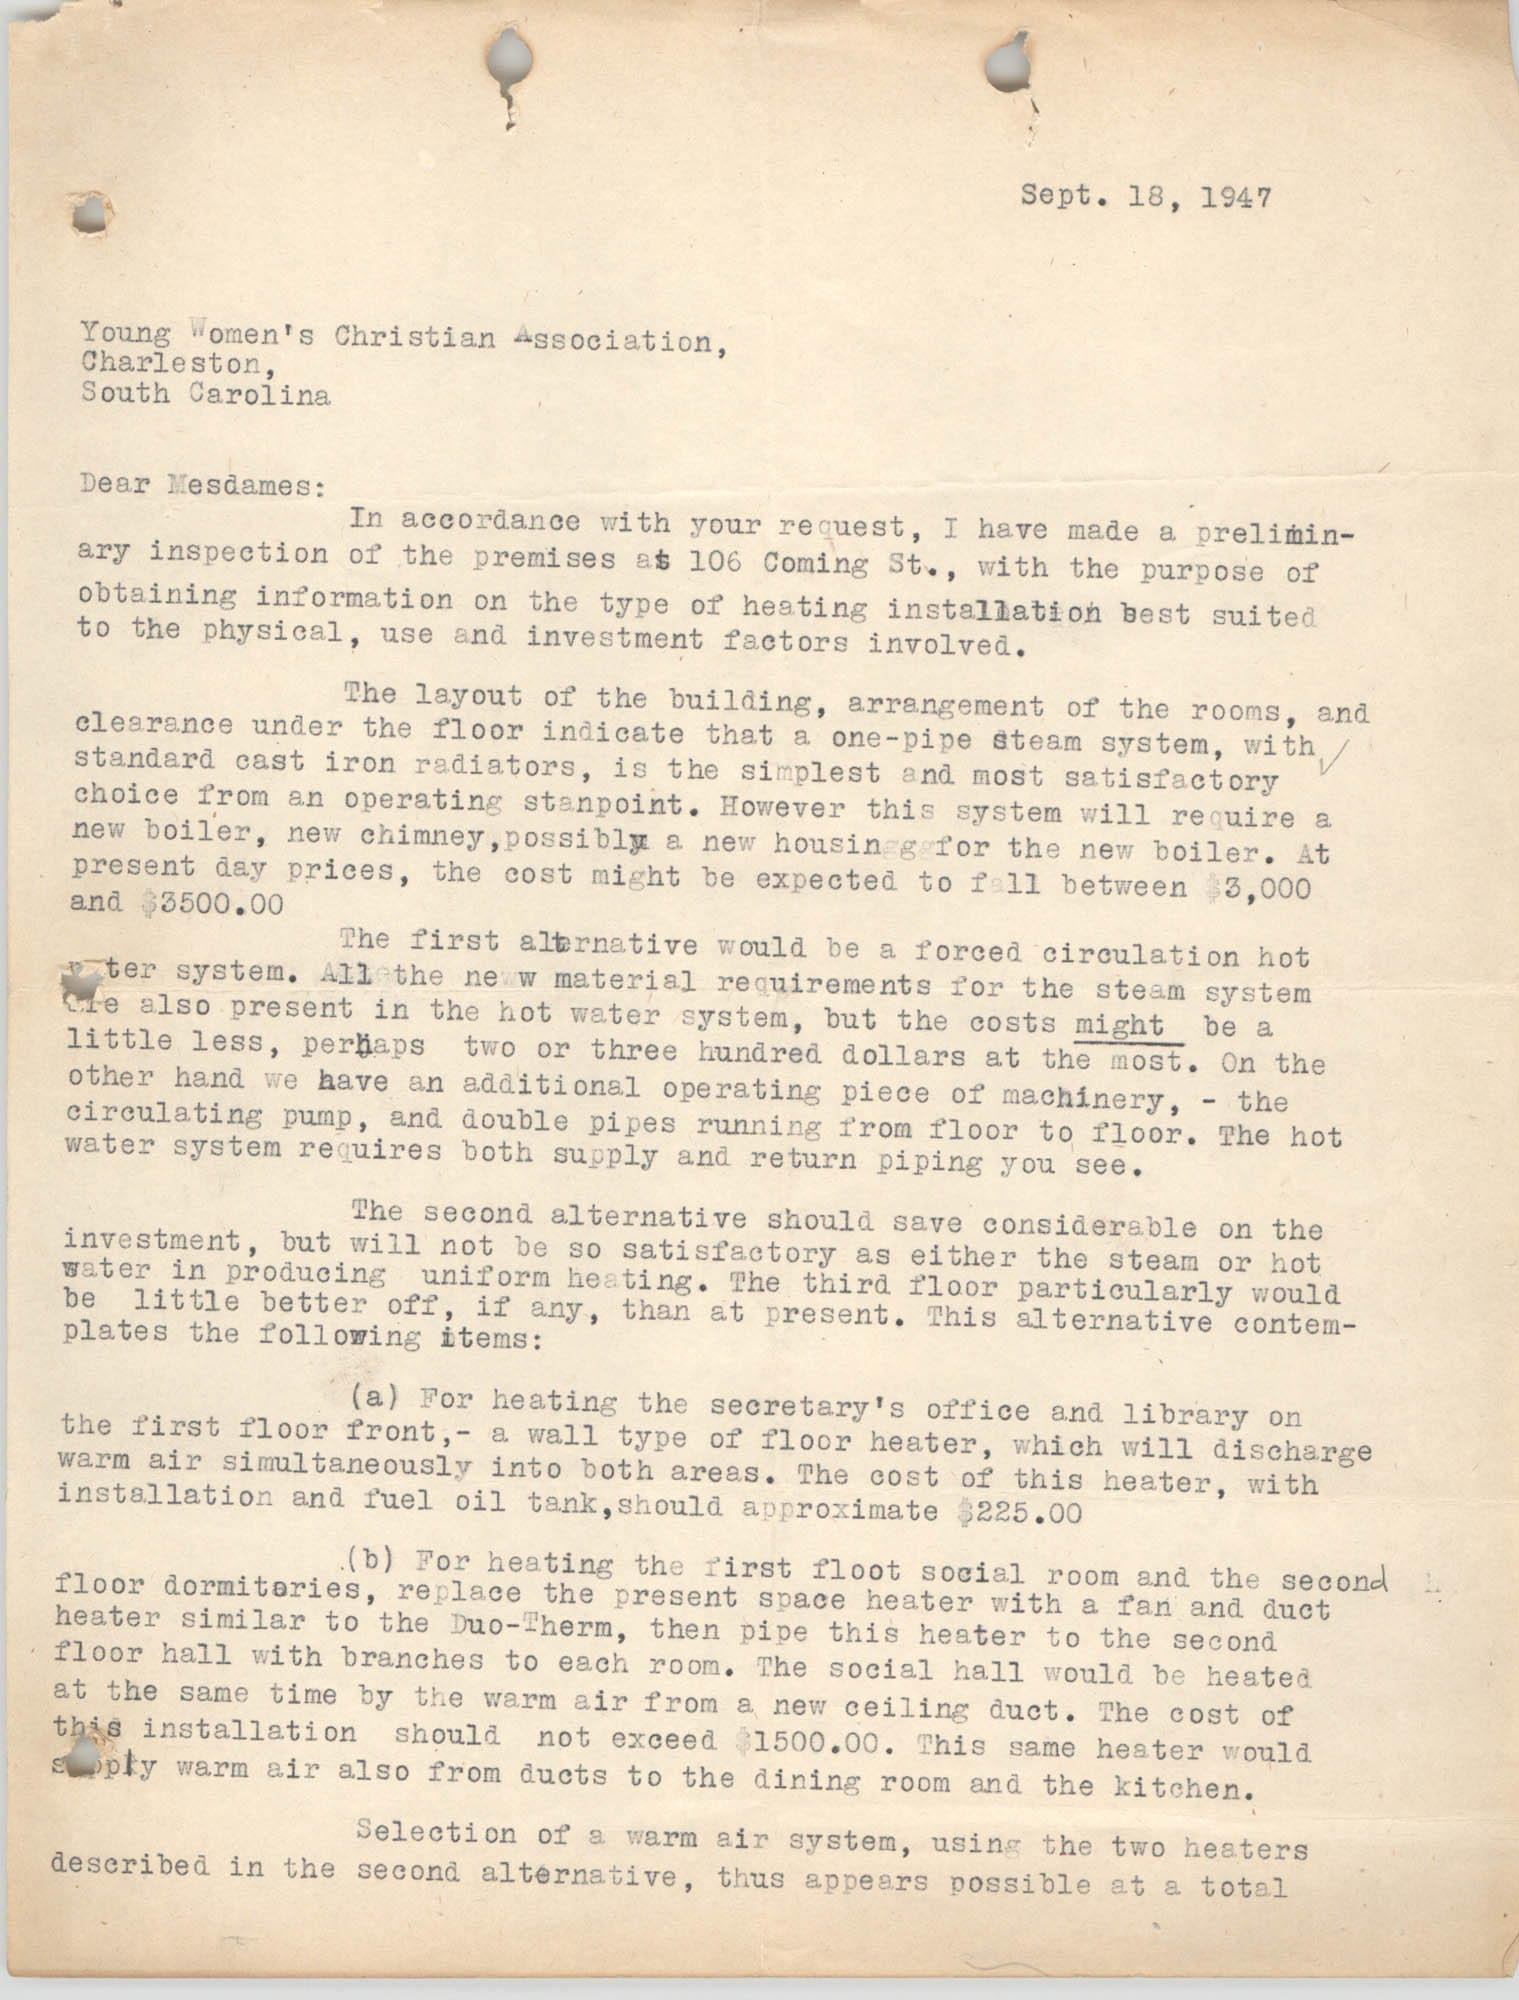 Letter from Robert H. Emerick to Y.W.C.A., September 18, 1947, Page 1